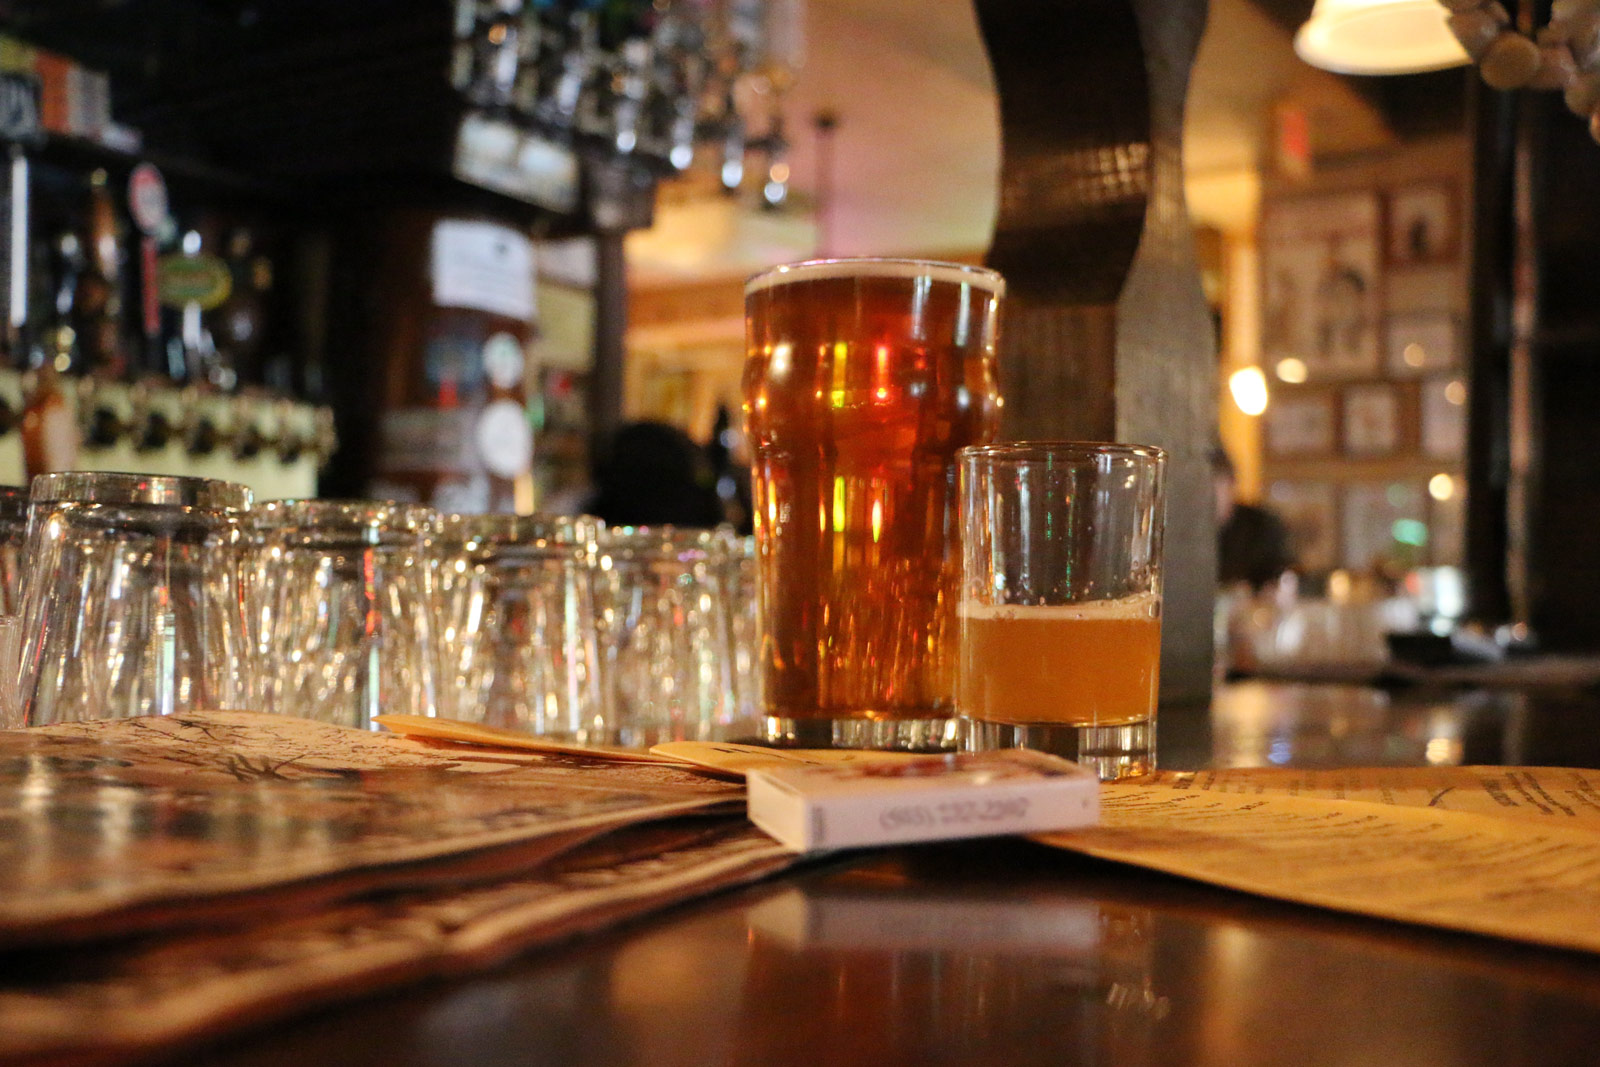 A Bartender's Perspective on Craft Beer